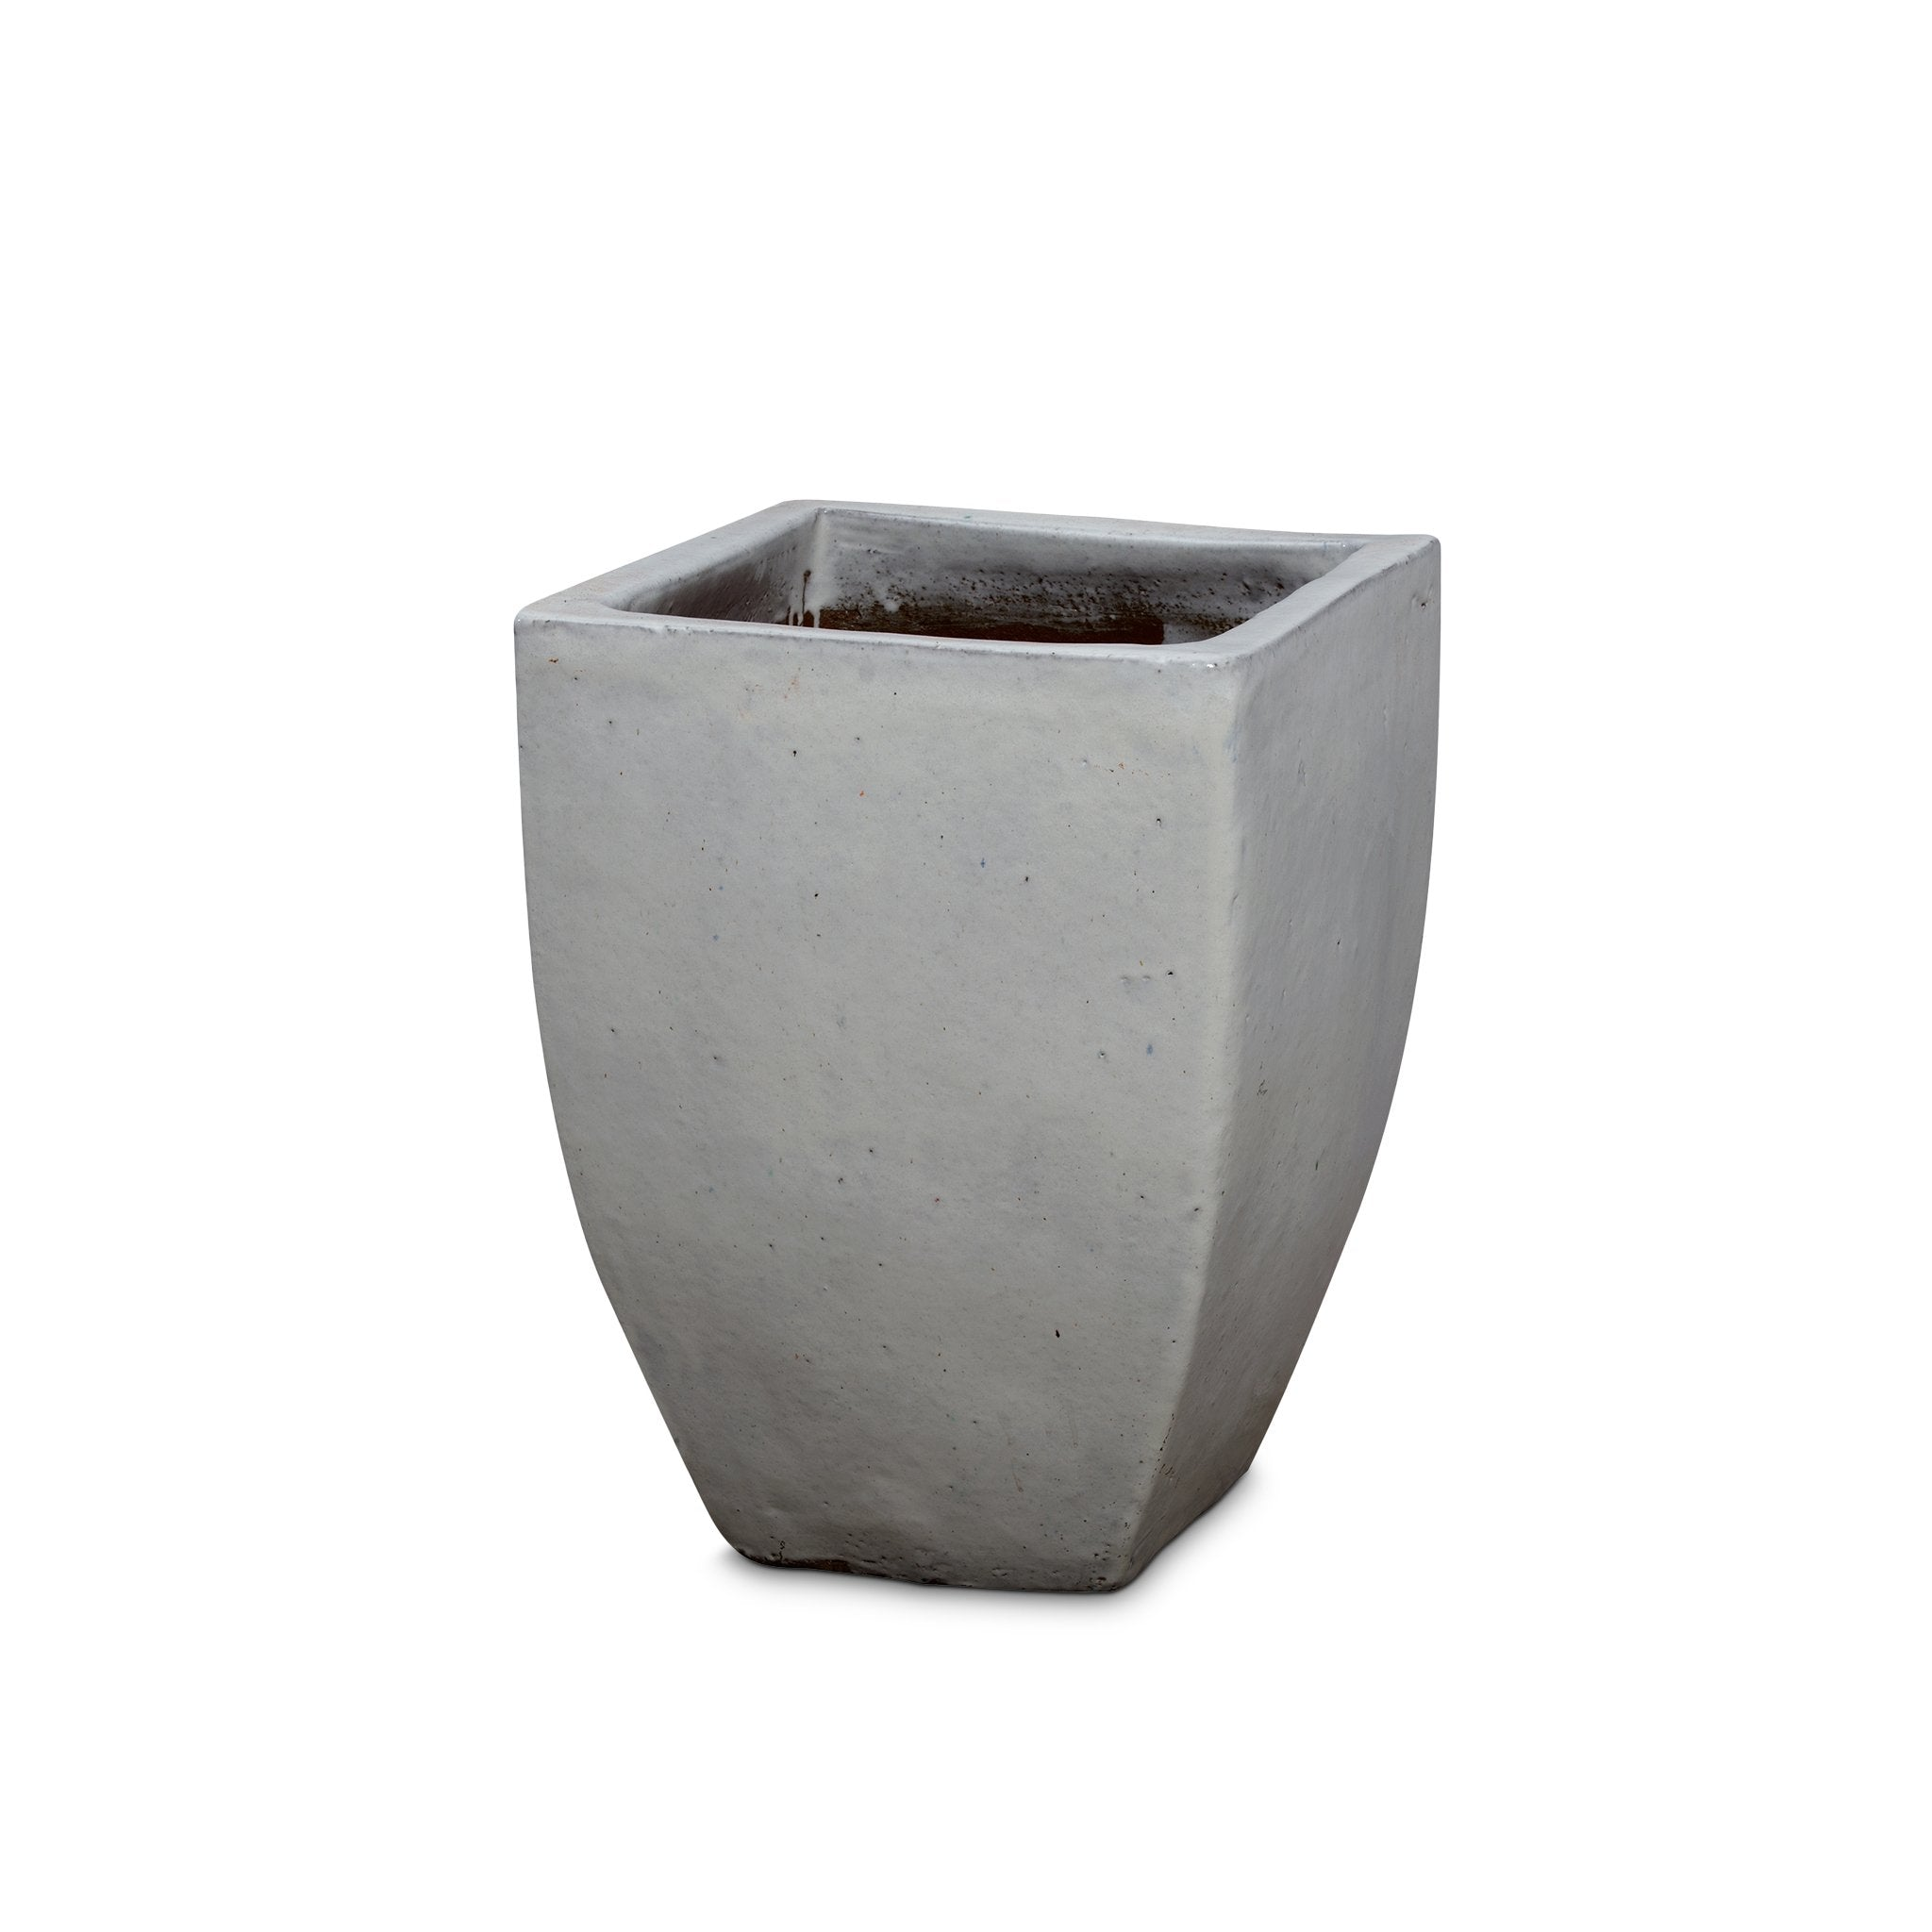 Tian Yi Ge Planter Medium